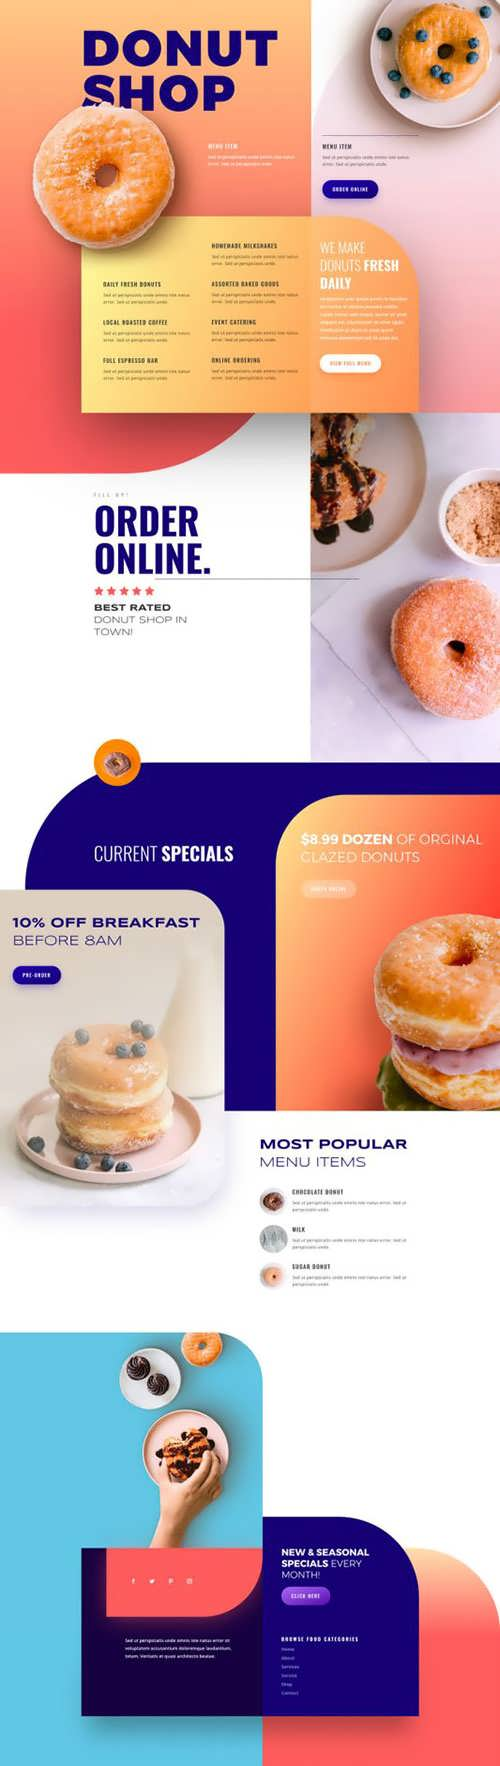 donut shop landing page